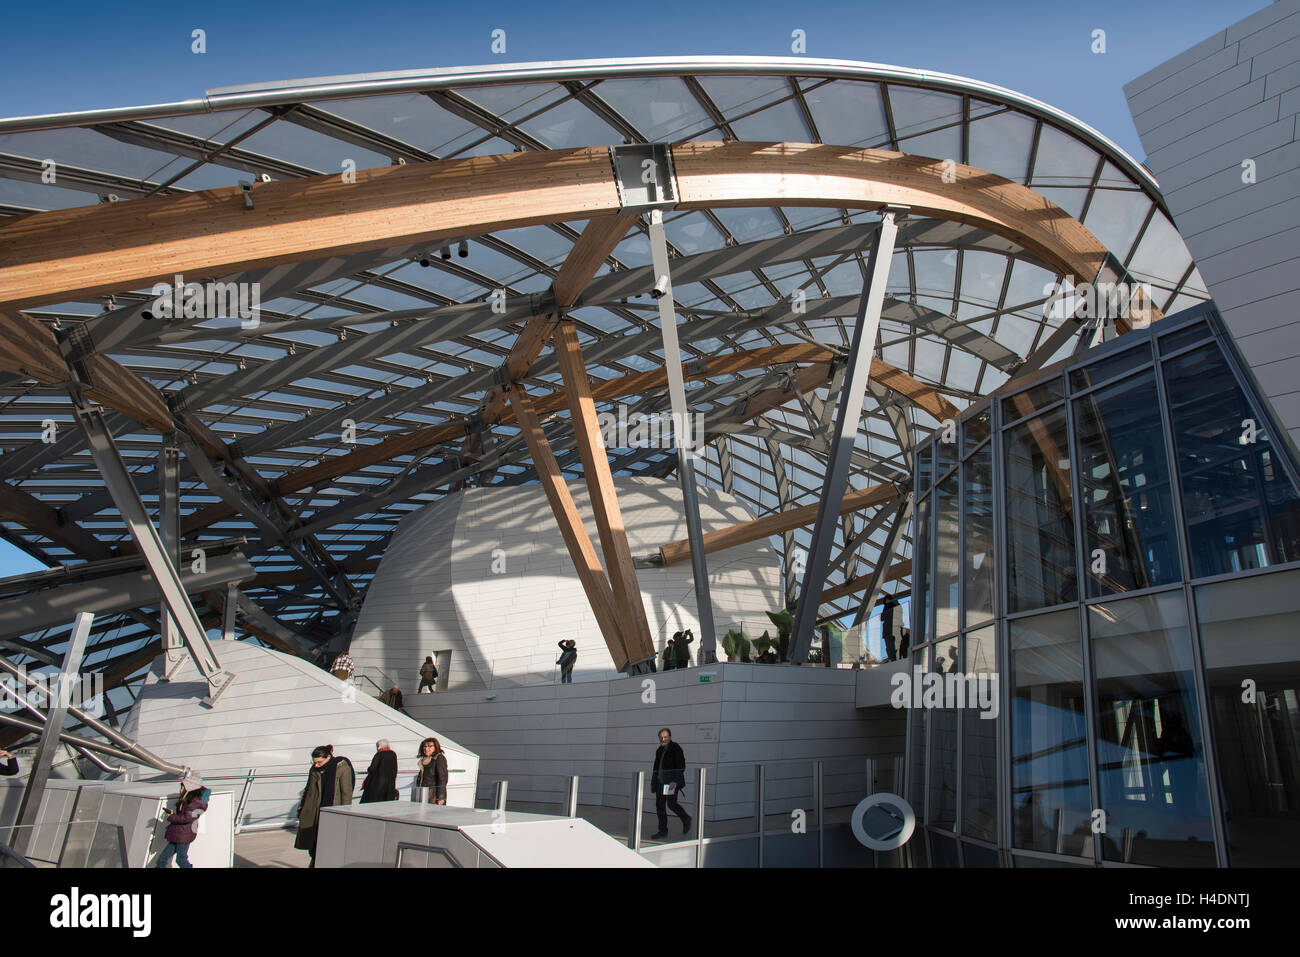 Scenic view of Louis Vuitton Foundation Art Museum Paris France Stock Photo